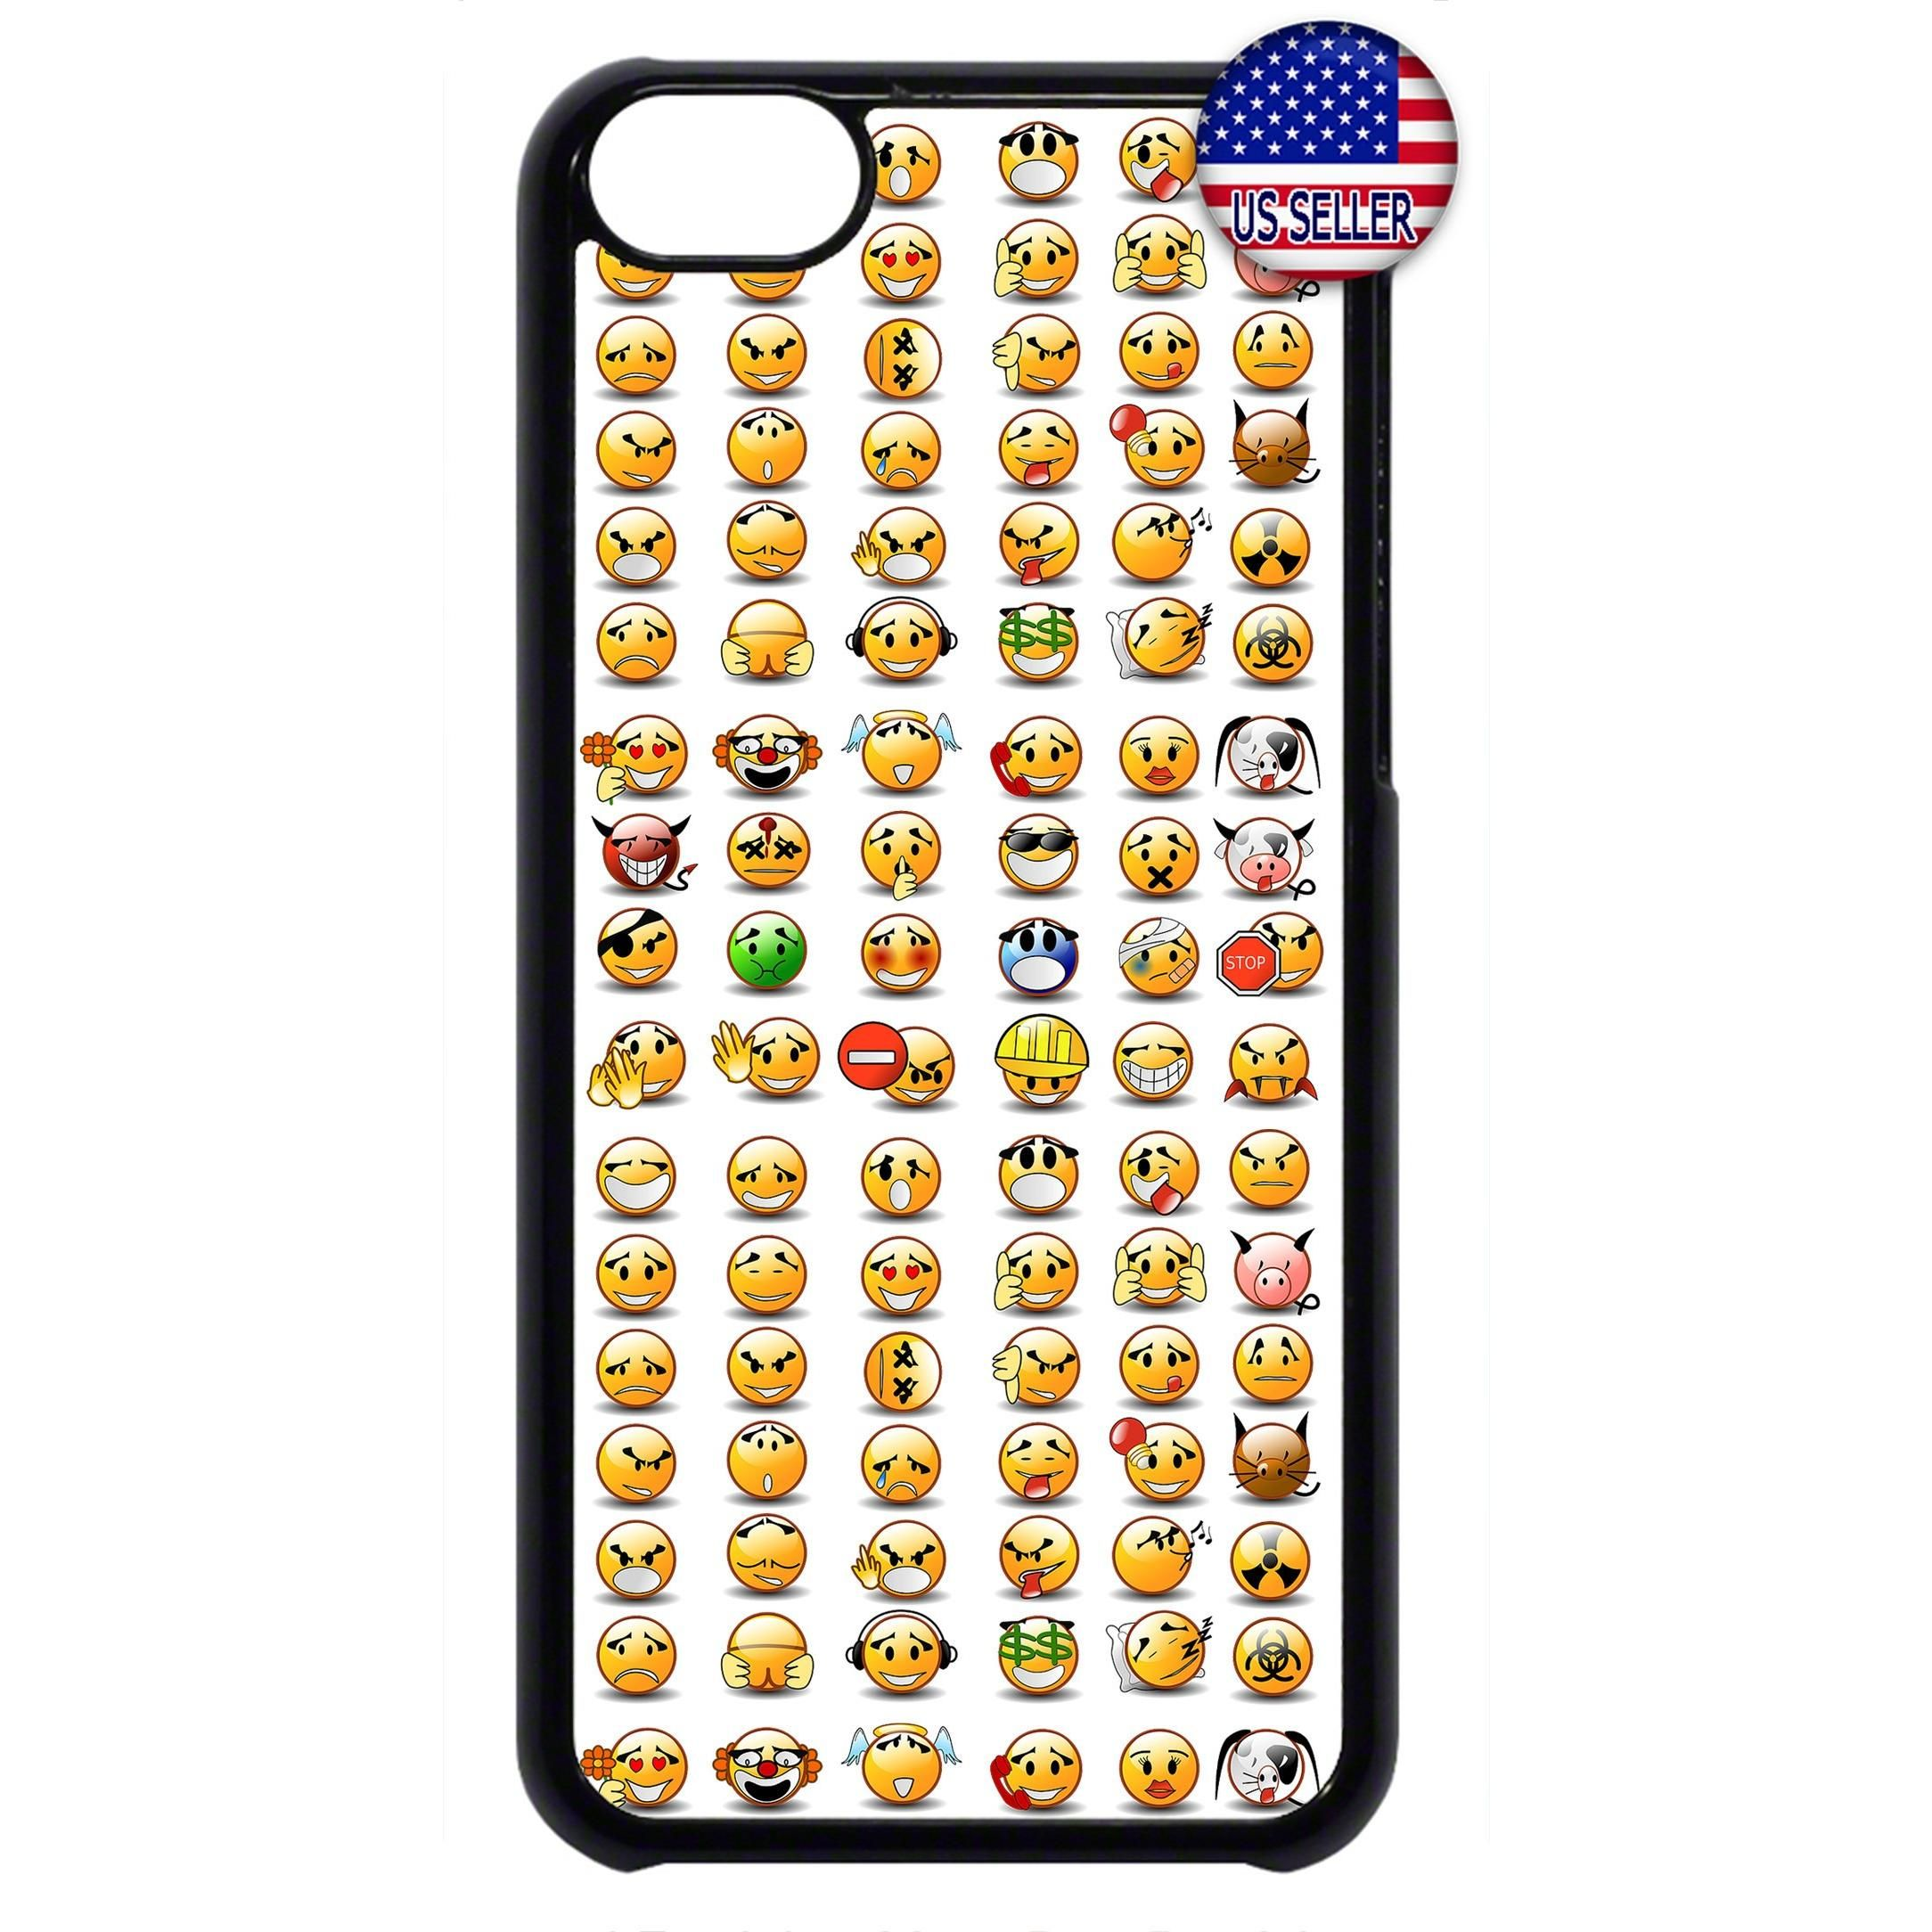 Funny Emoji Emoticons Rubber Case Cover For Ipod Touch Funny Emoji Rubber Case Emoji